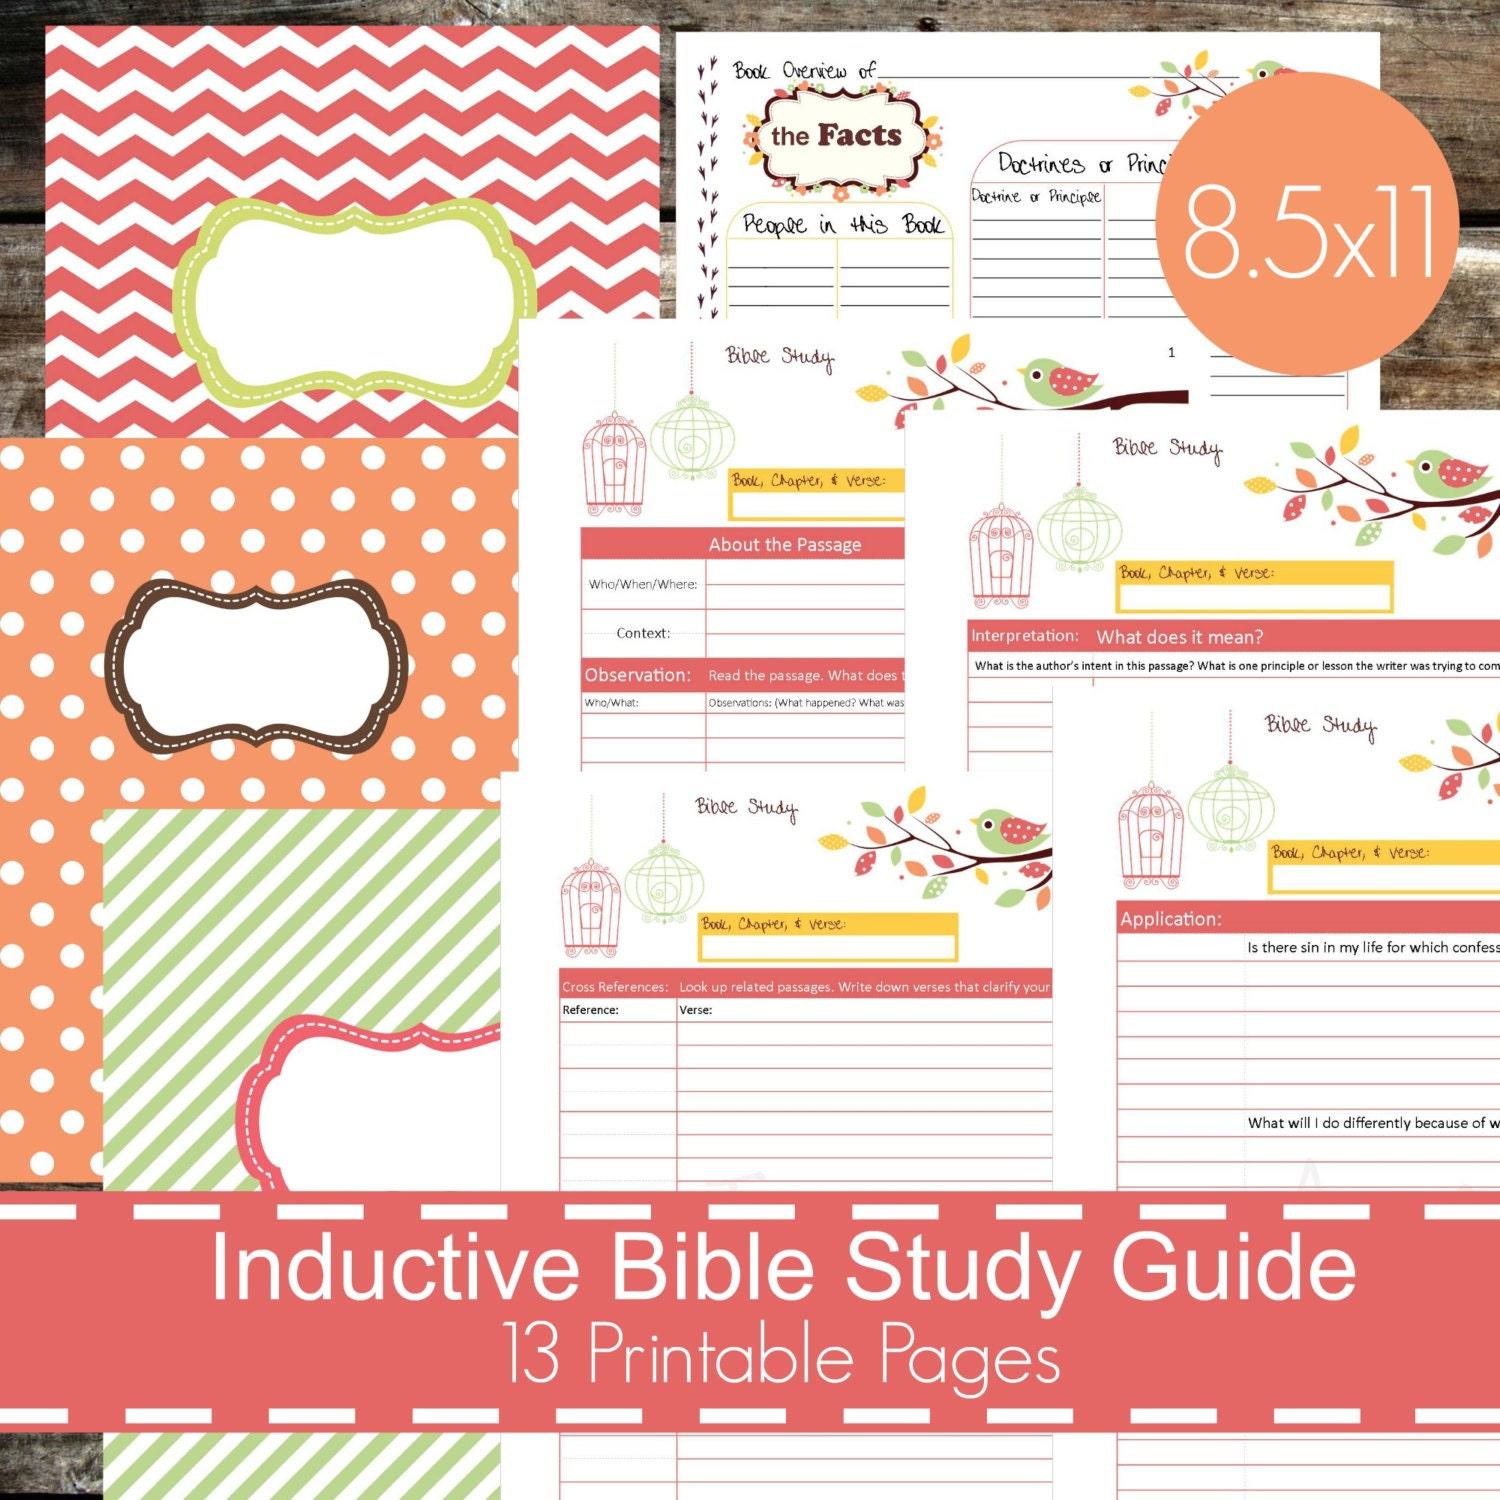 Gratifying image pertaining to free printable bible study guides